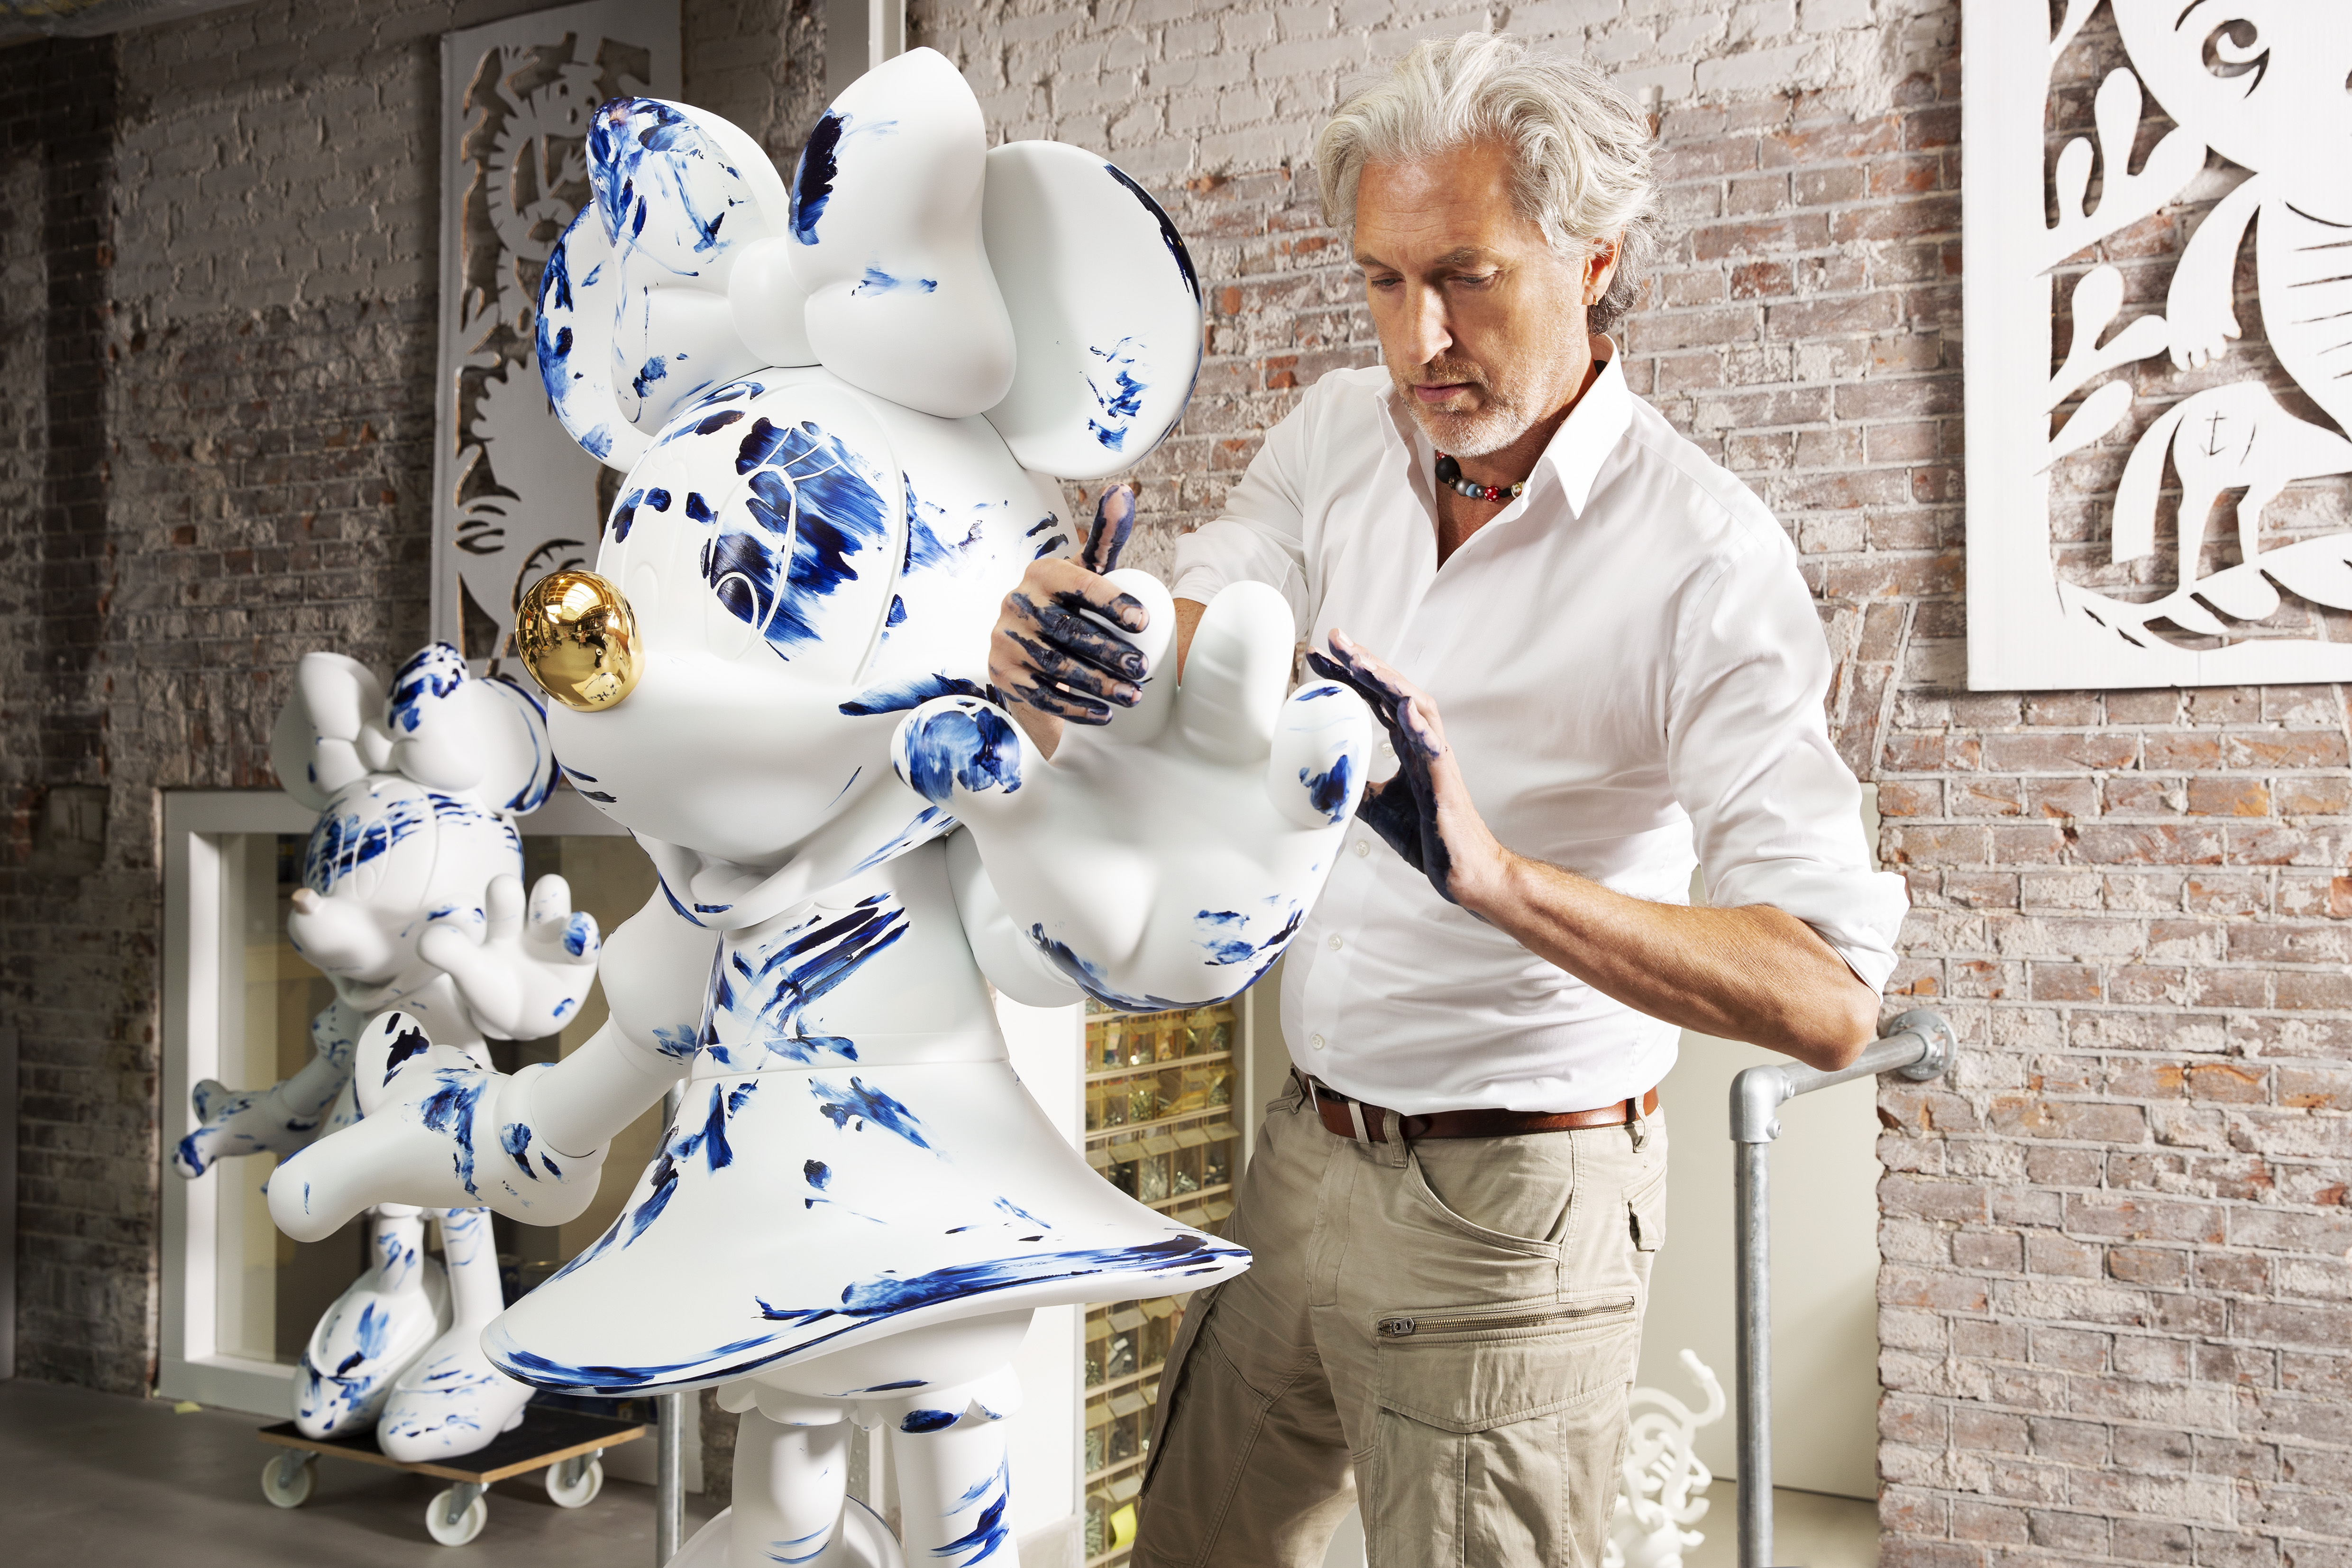 Designer Marcel Wanders gets candid about his views on design and sustainability